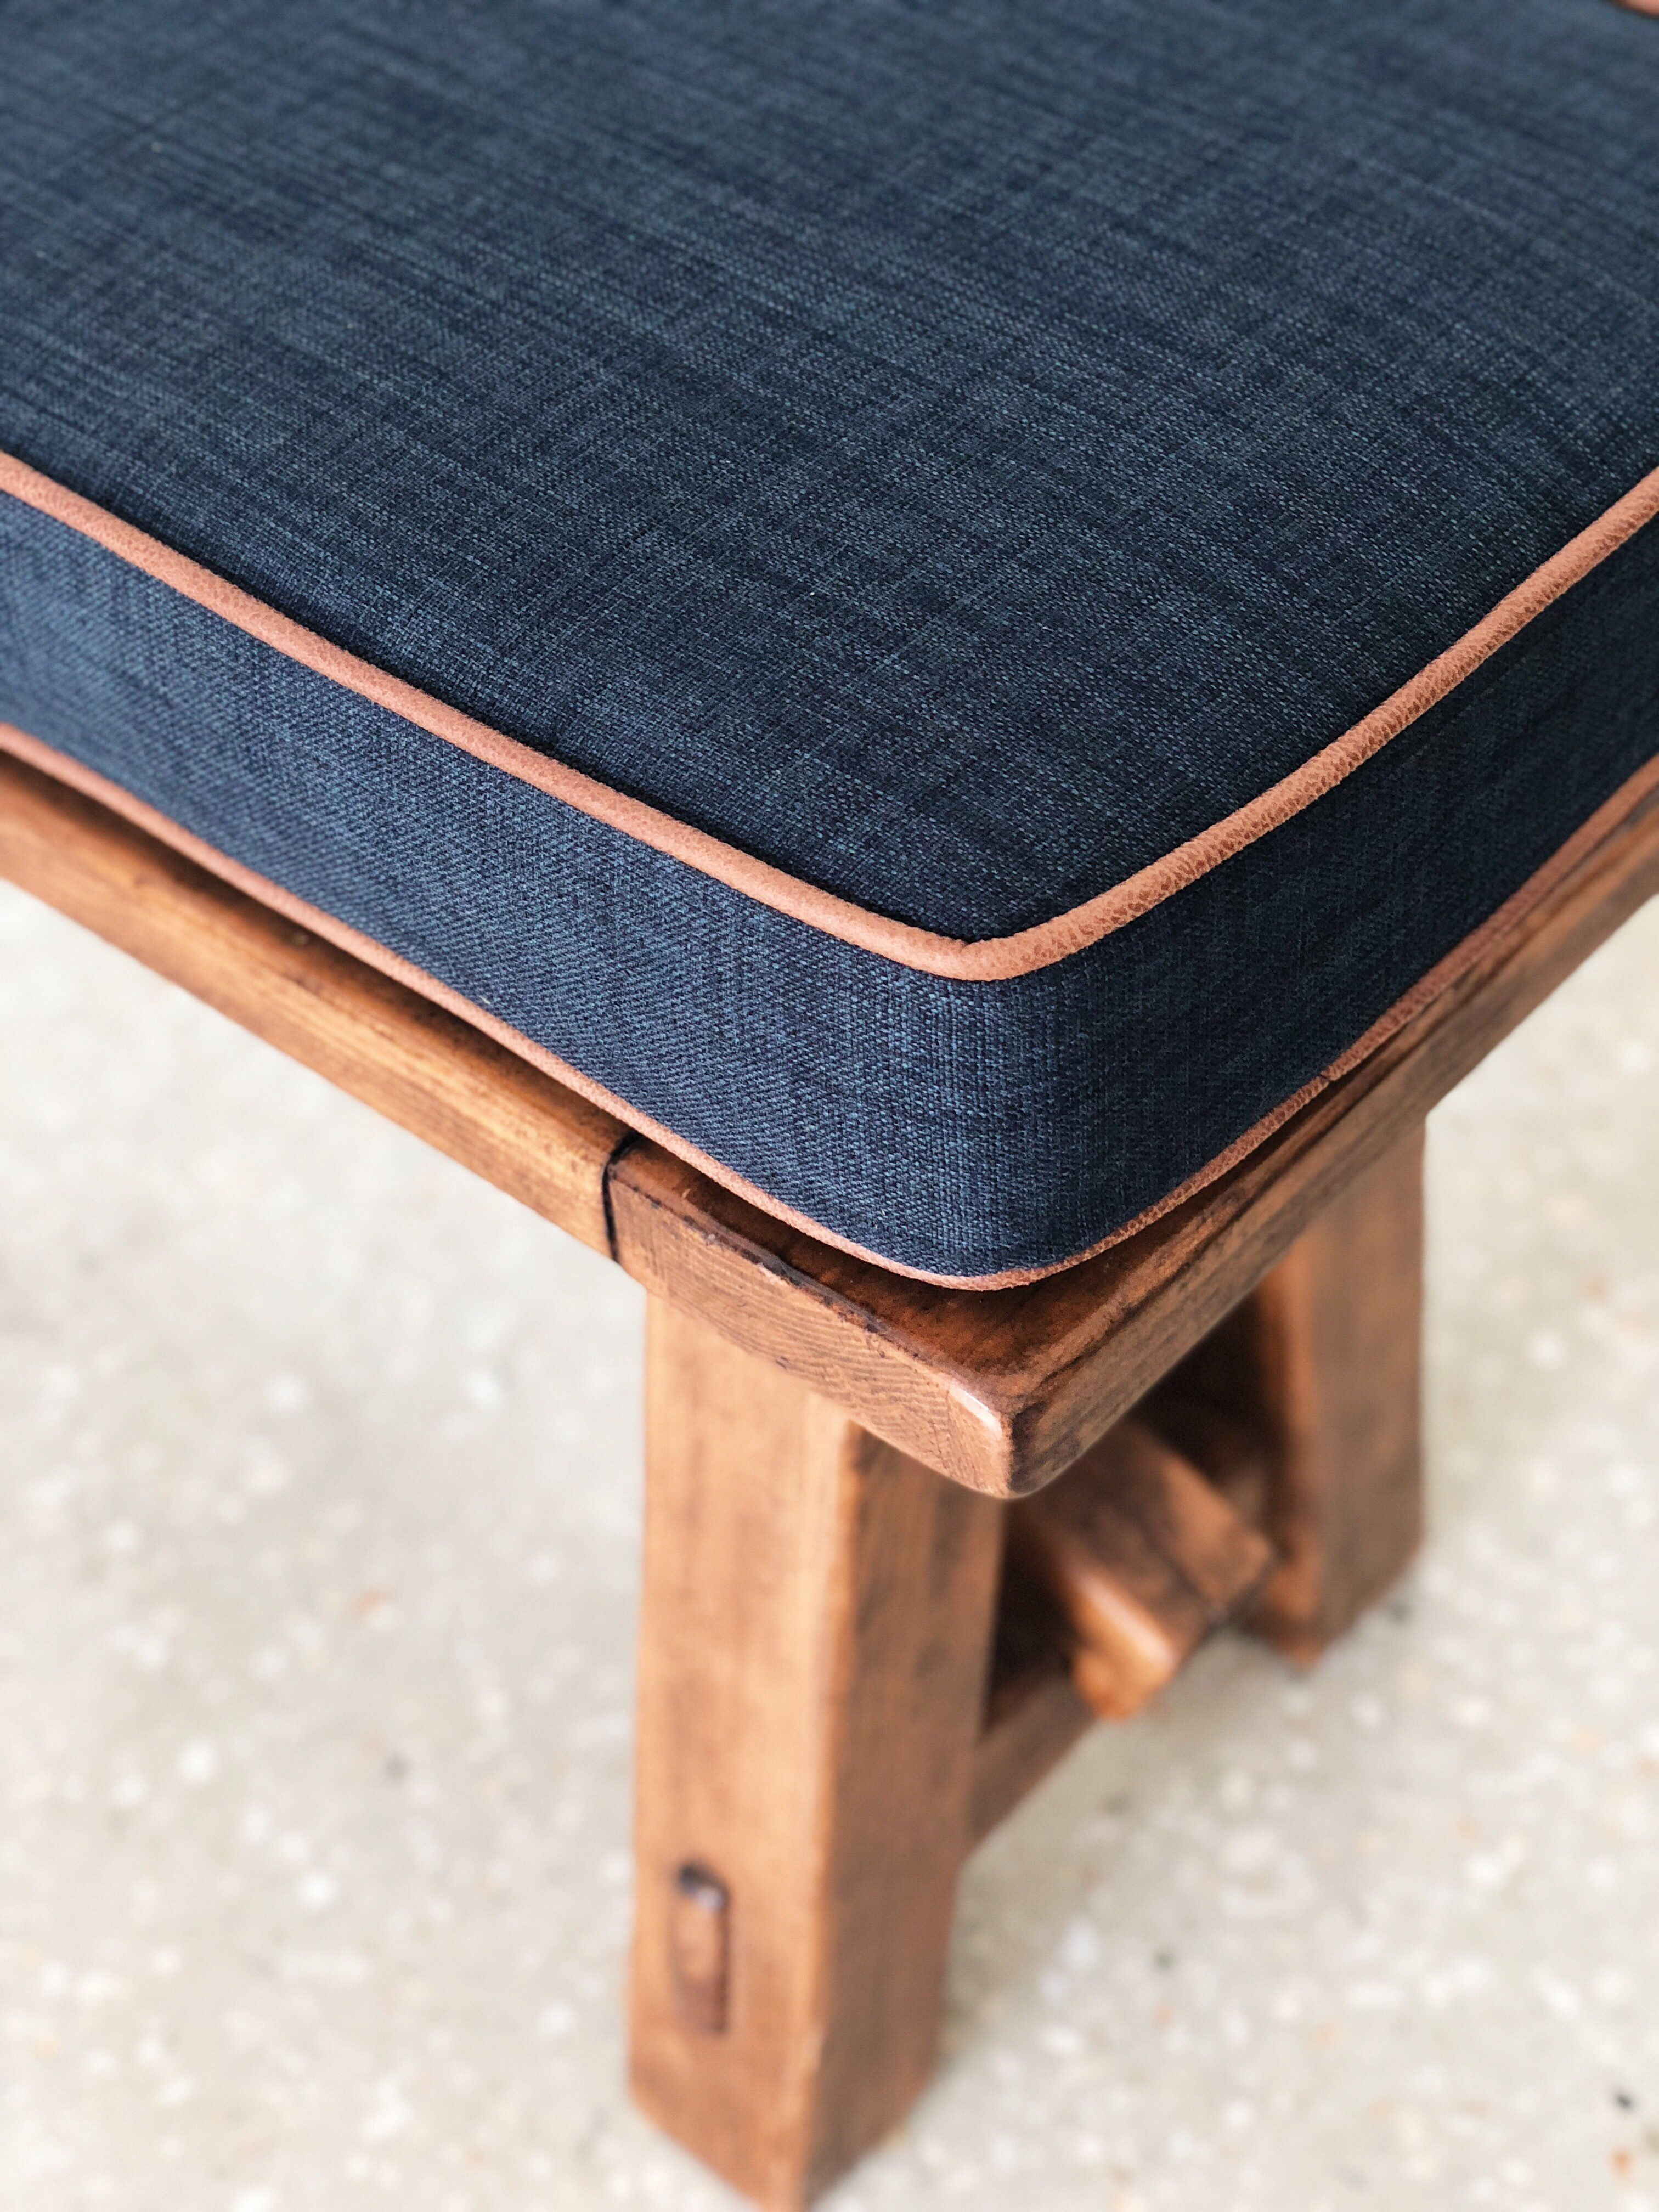 Close Up Squarefox Custom Bench Seat Cushion In Navy With Faux Leather Trim Custom Bench Seating Bench Cushions Leather Bench Seat